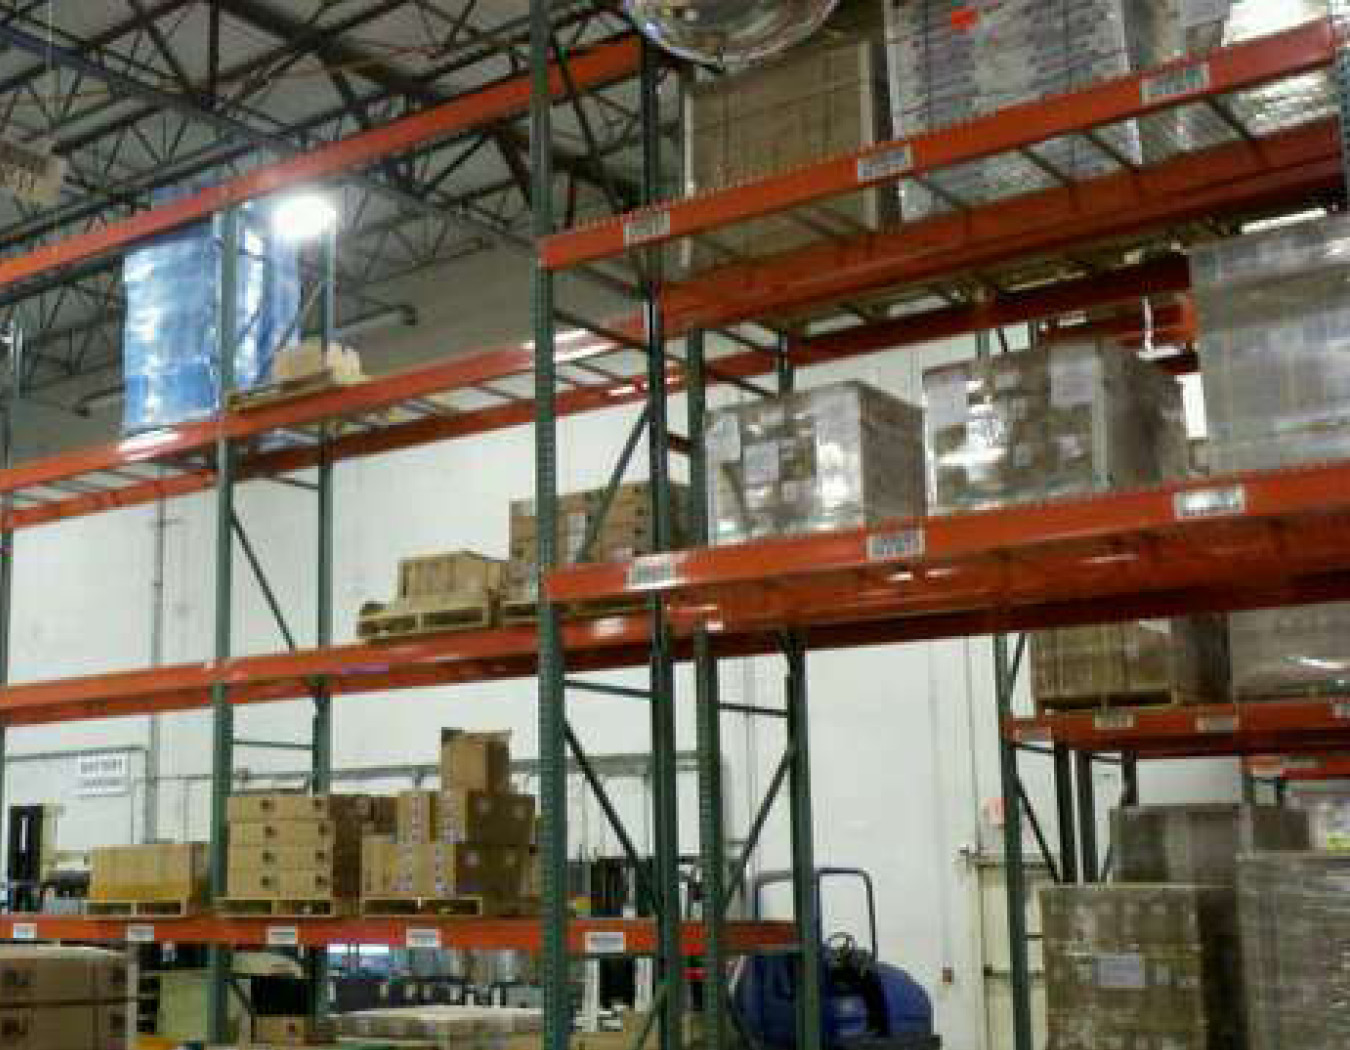 USE FOR WAREHOUSING